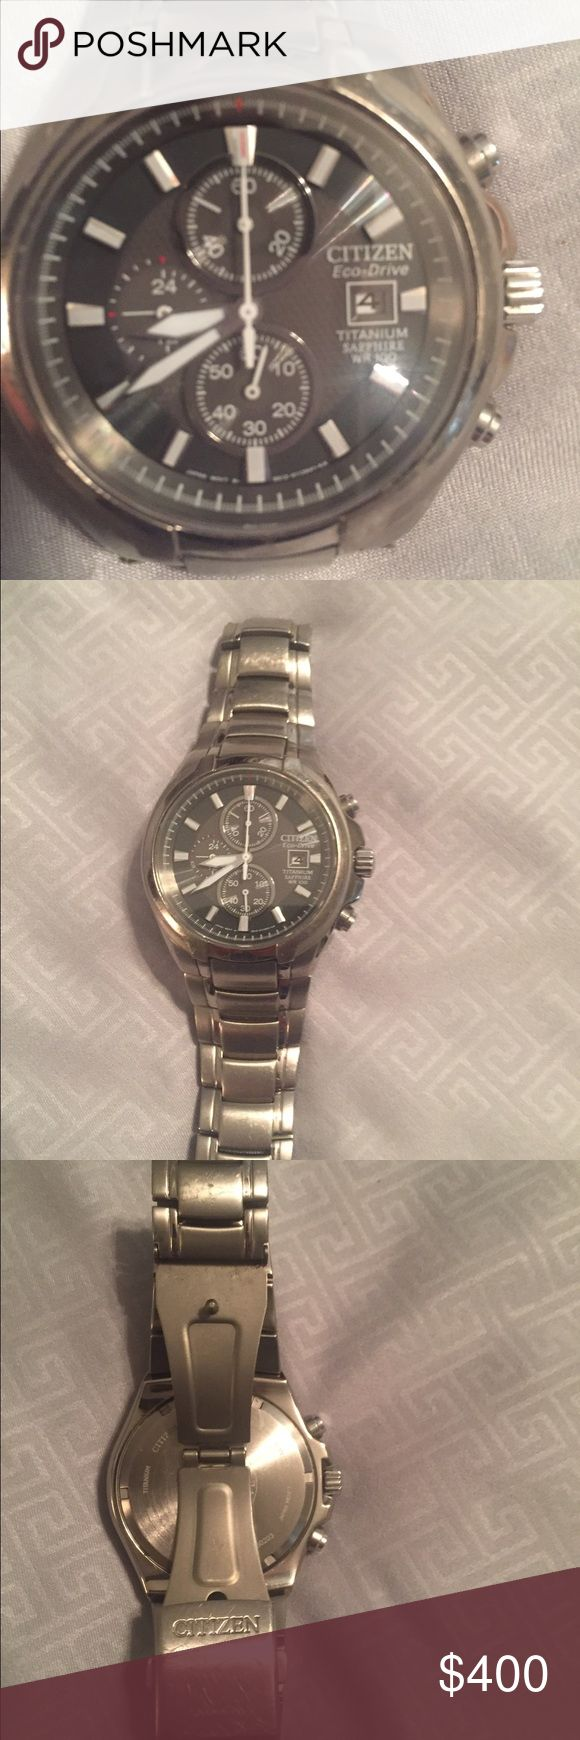 Men's Citizen Ecodrive Titanium Watch Men's Titanium Citizen Ecodrive Watch . No scratches on Crystal but light wear ( scratches) on band from wear. See photos. No box. Sold as is and price reflects the scratches on band which are due to normal wear. Citizen Accessories Watches